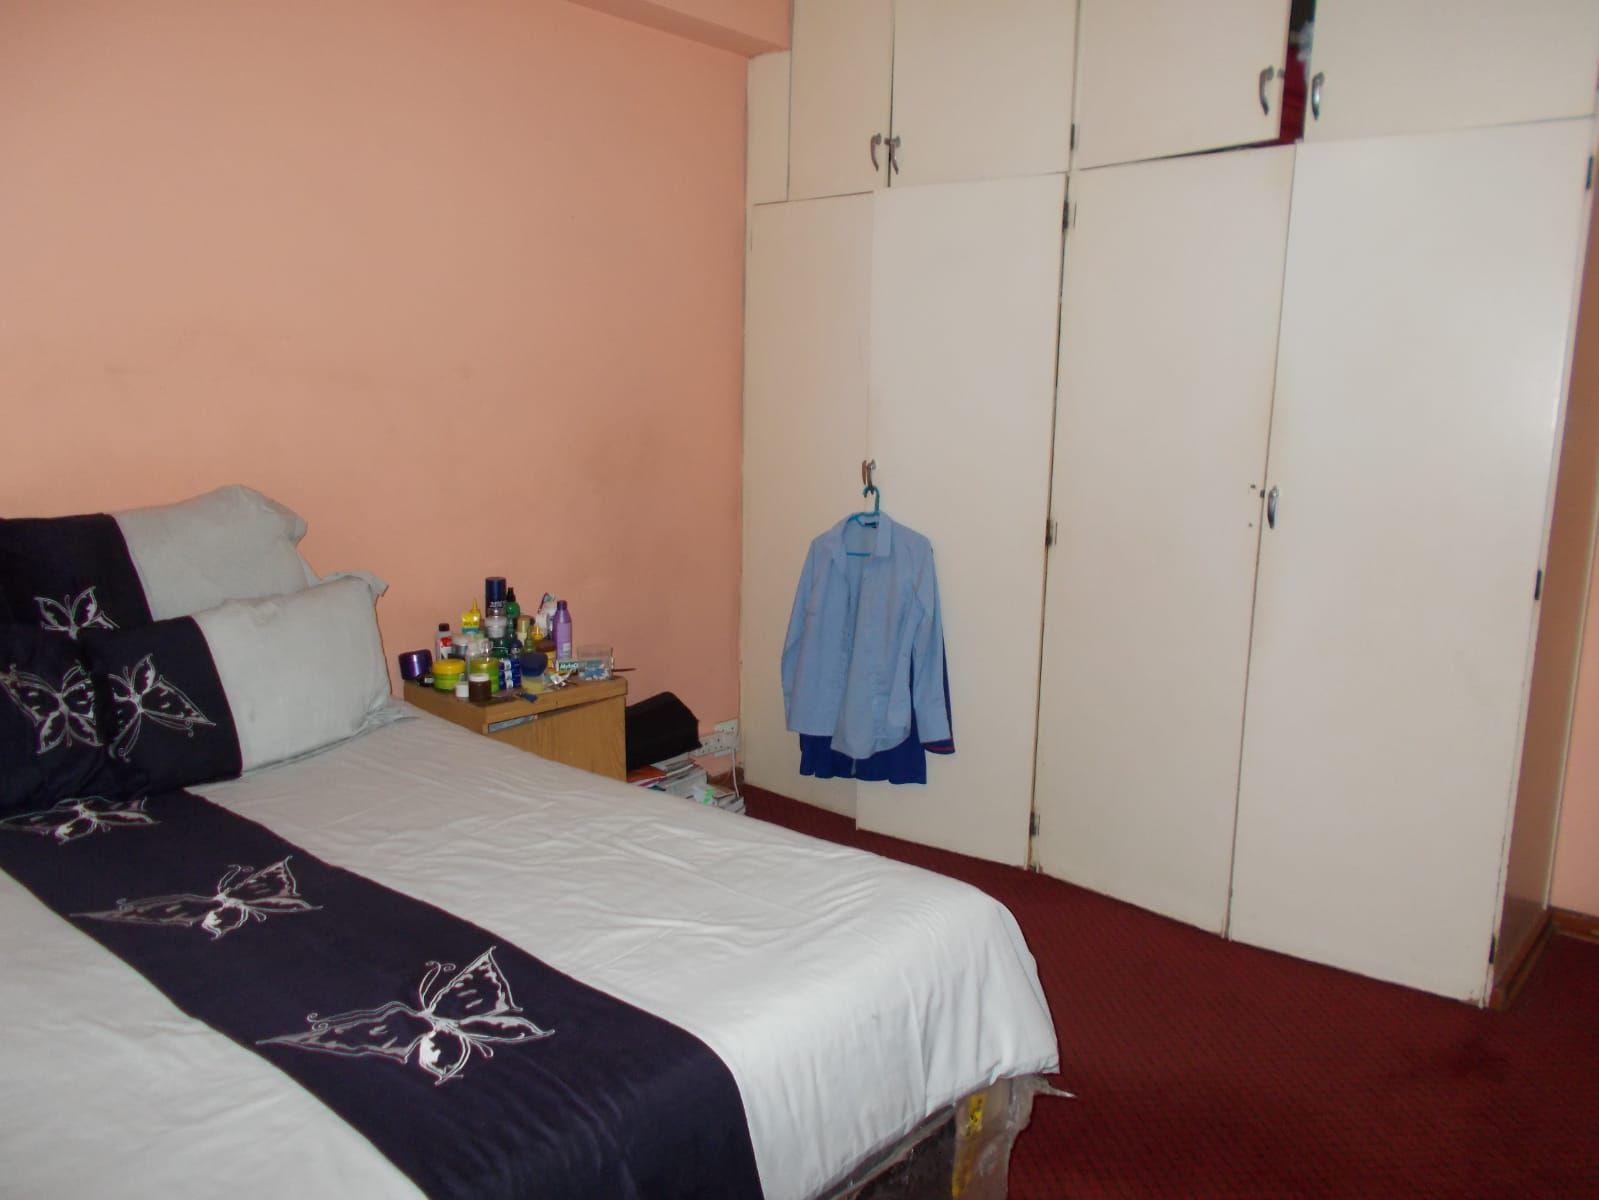 Apartment in Hillbrow - WhatsApp Image 2021-01-12 at 13.04.40 (1).jpeg